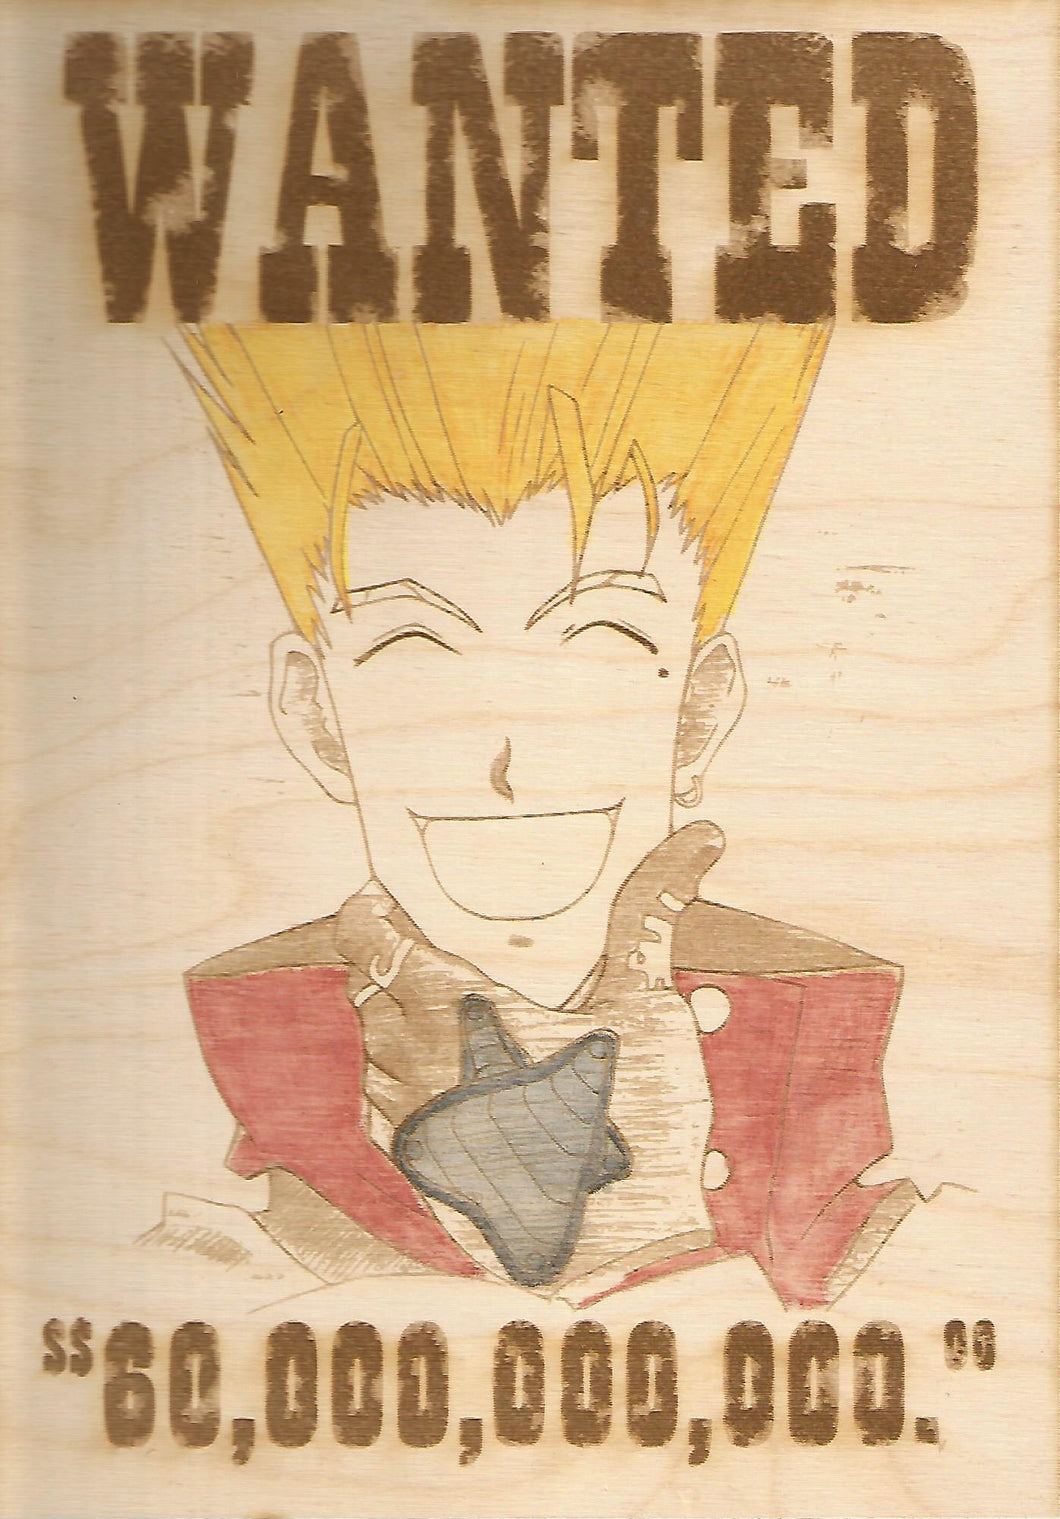 Trigun - Vash the Stampede Wooden Wanted Poster (Color) - TantrumCollectibles.com